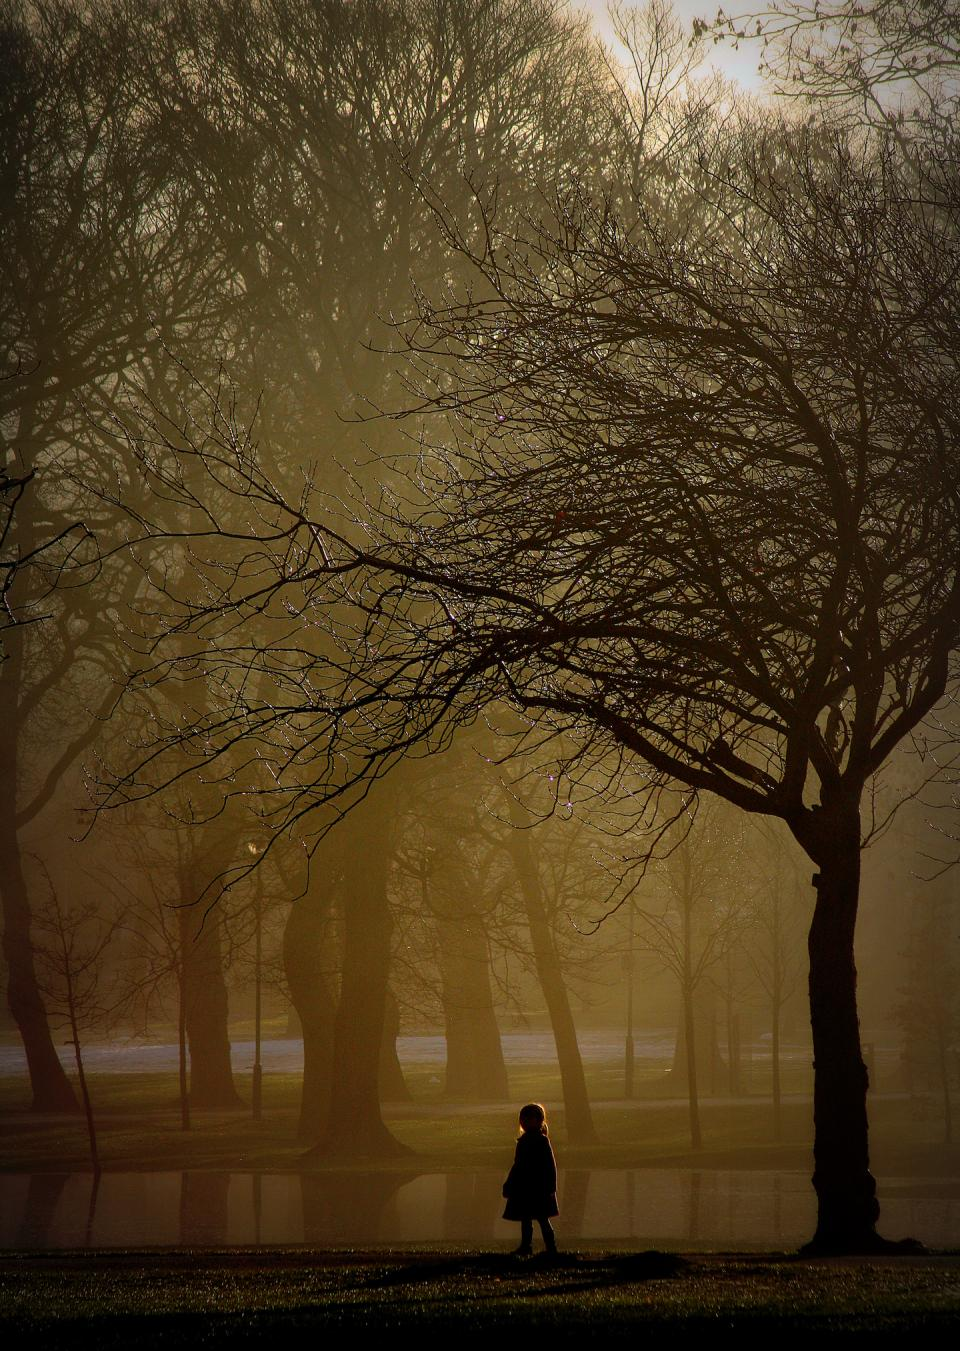 nature park trees fog haze yellow branches sunlight silhouette people kid child